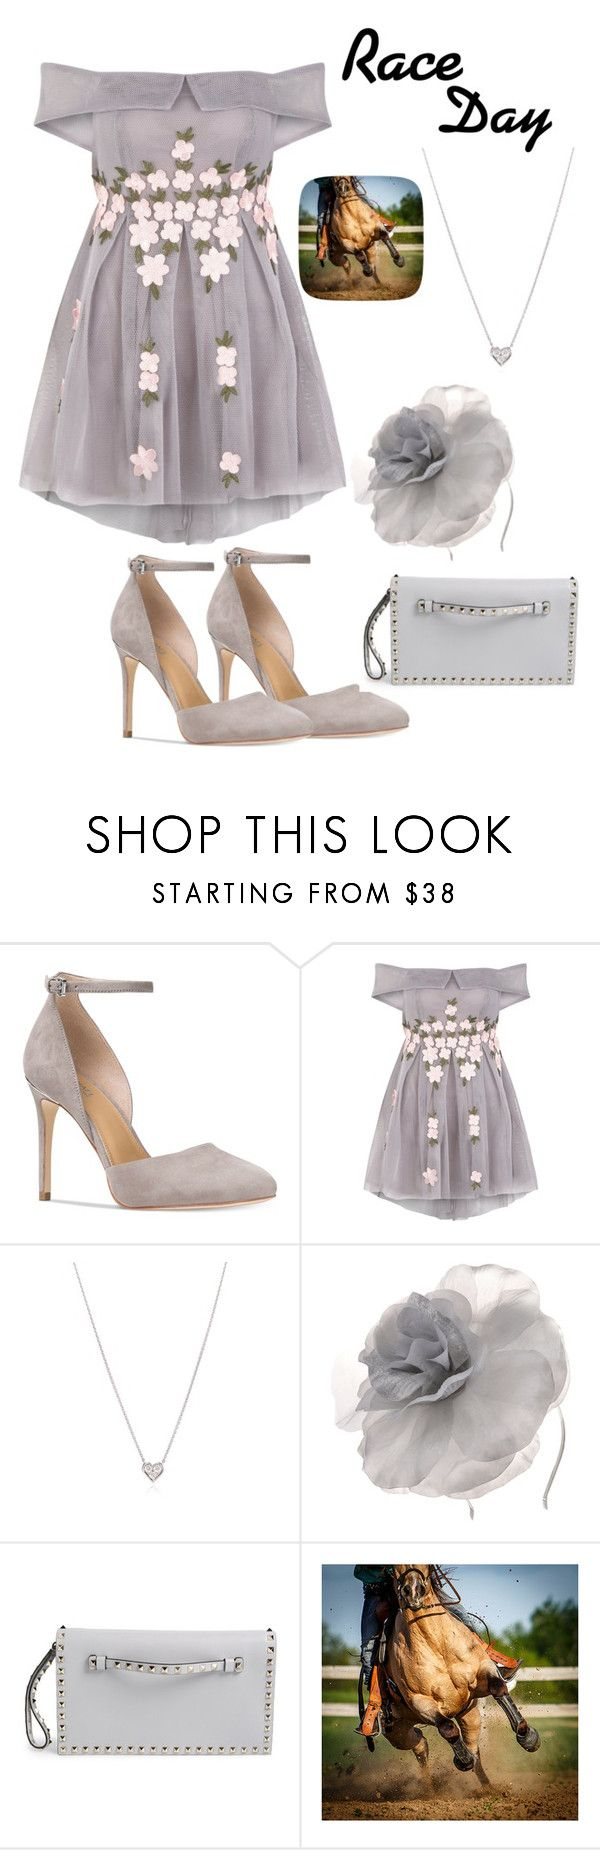 """""""Race Day"""" by laurenc16 ❤ liked on Polyvore featuring Michael Kors, Tiffany & Co., Johnny Loves Rosie and Valentino"""